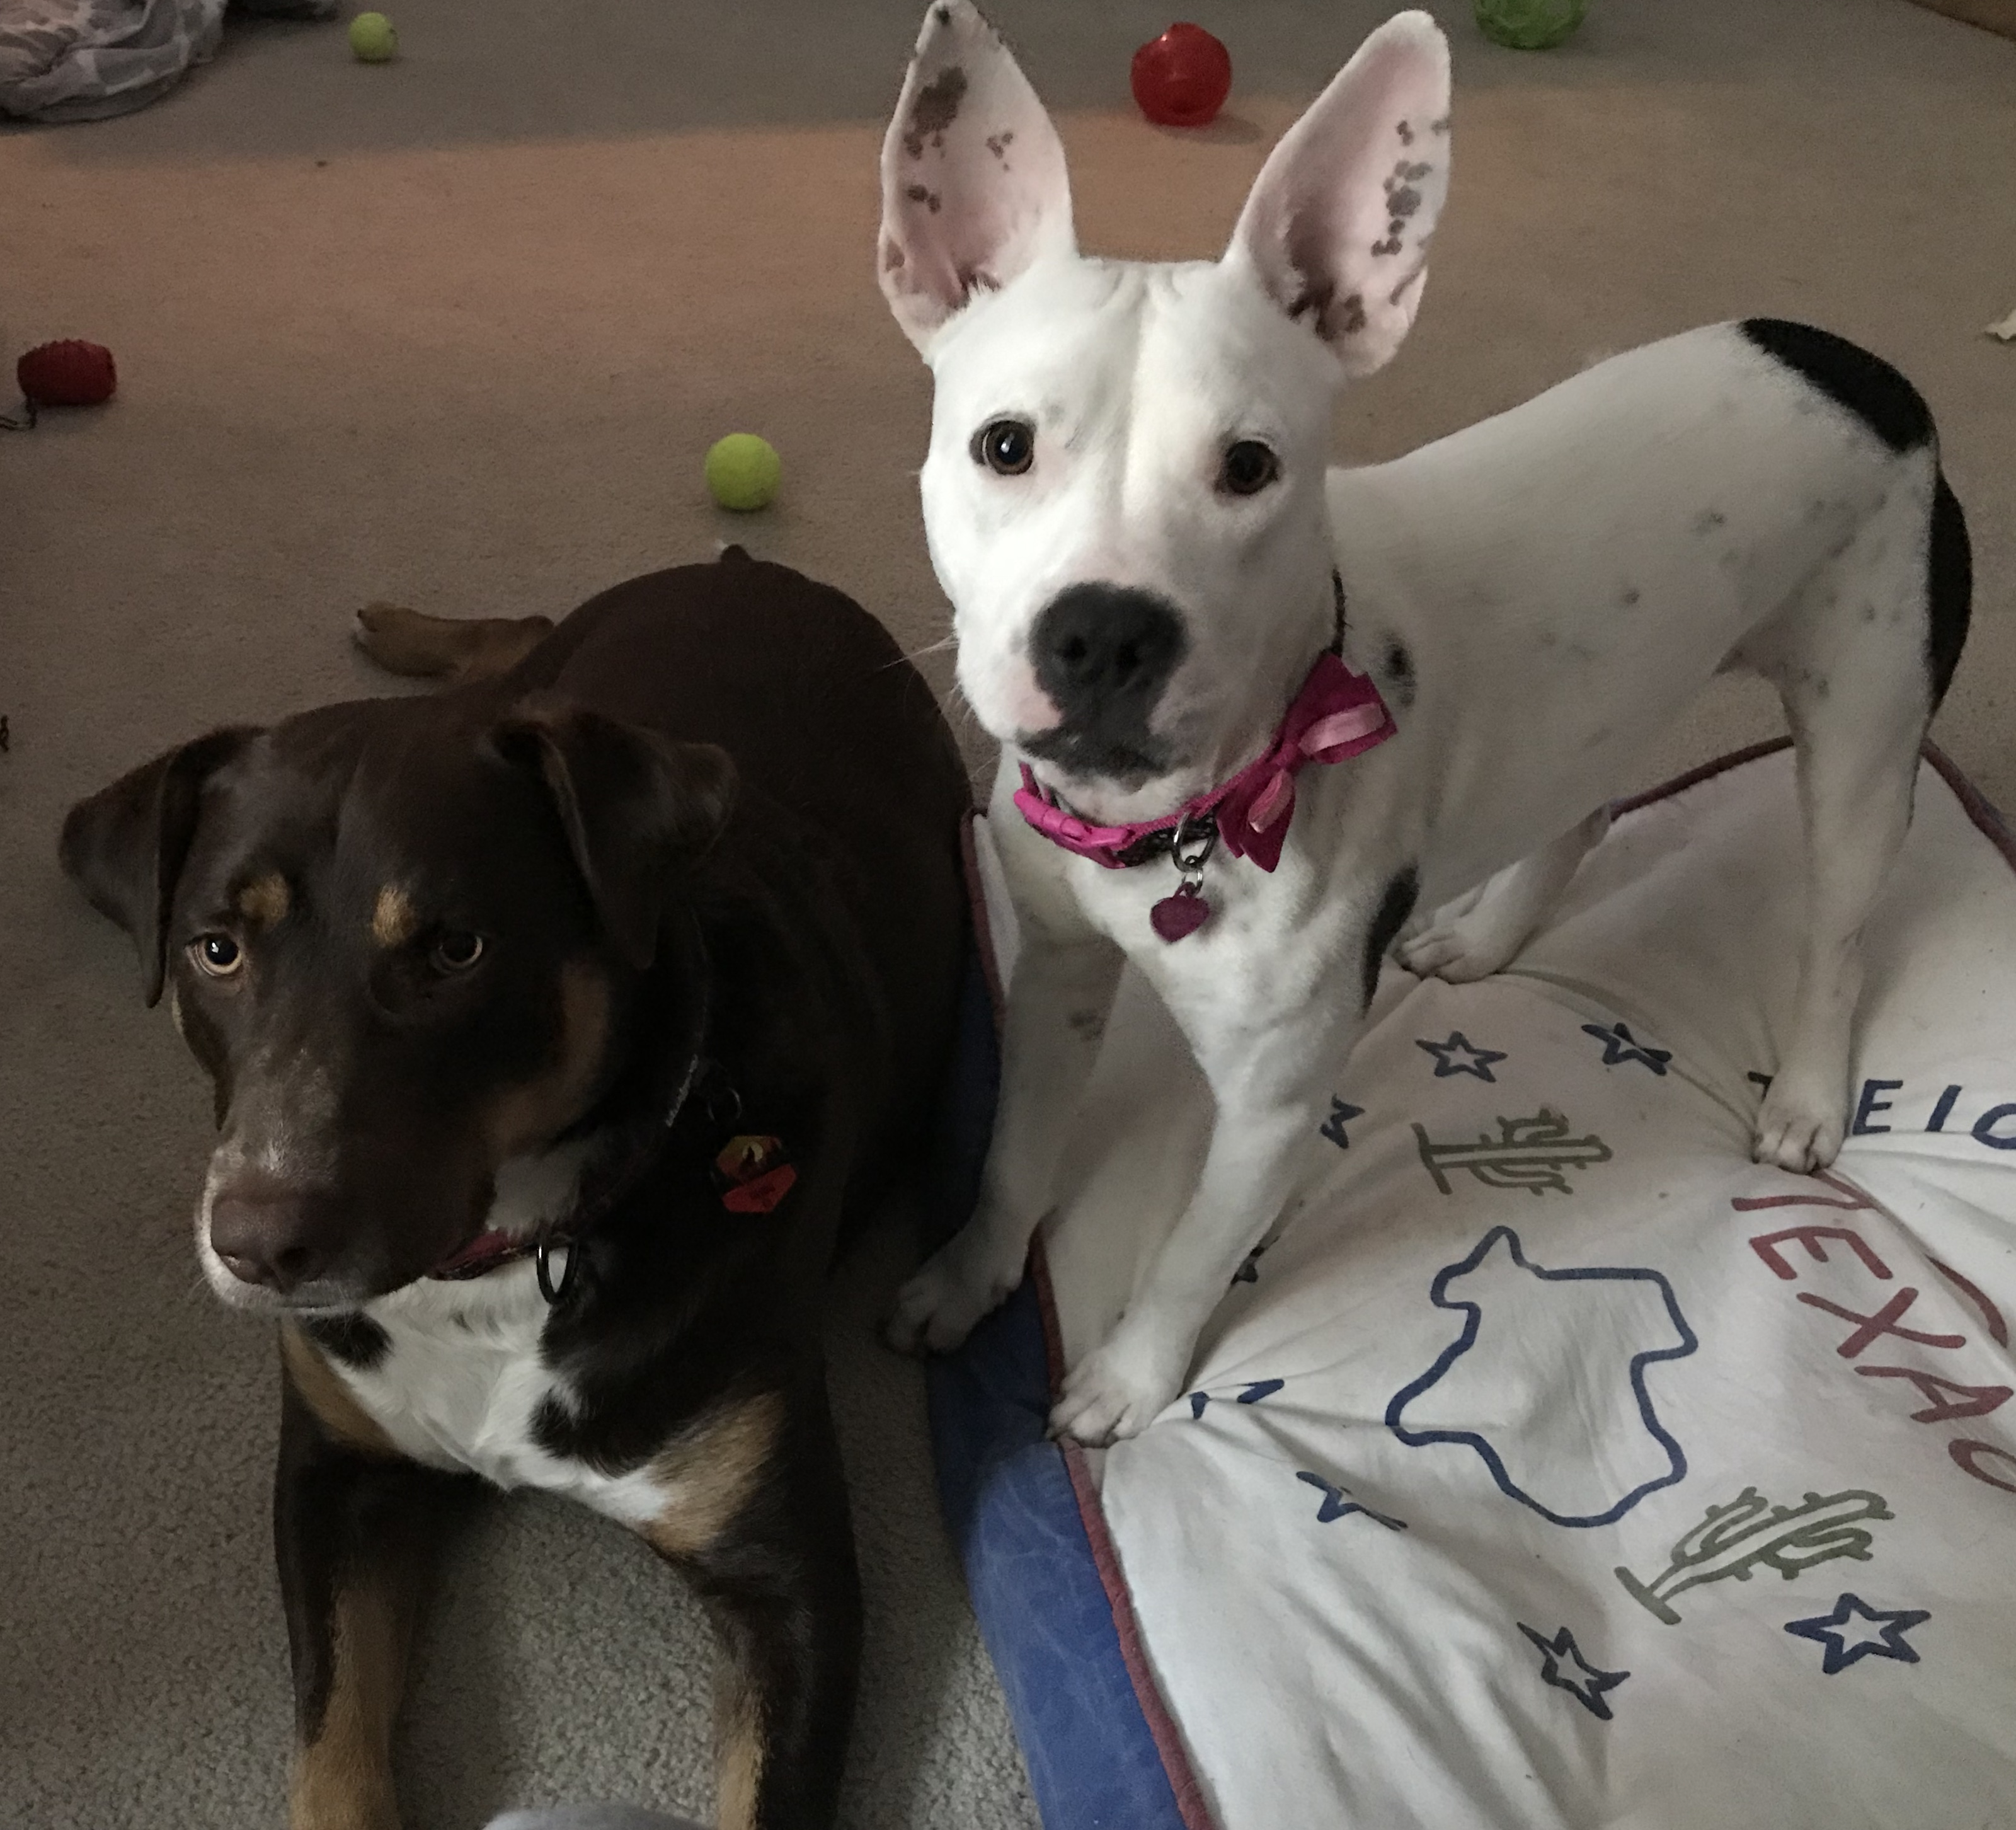 How About A Pet Picture Thread: Dogs, Cats, ...-e75c1f9c-1741-49fc-a6fa-970fbe86d3e4.jpeg